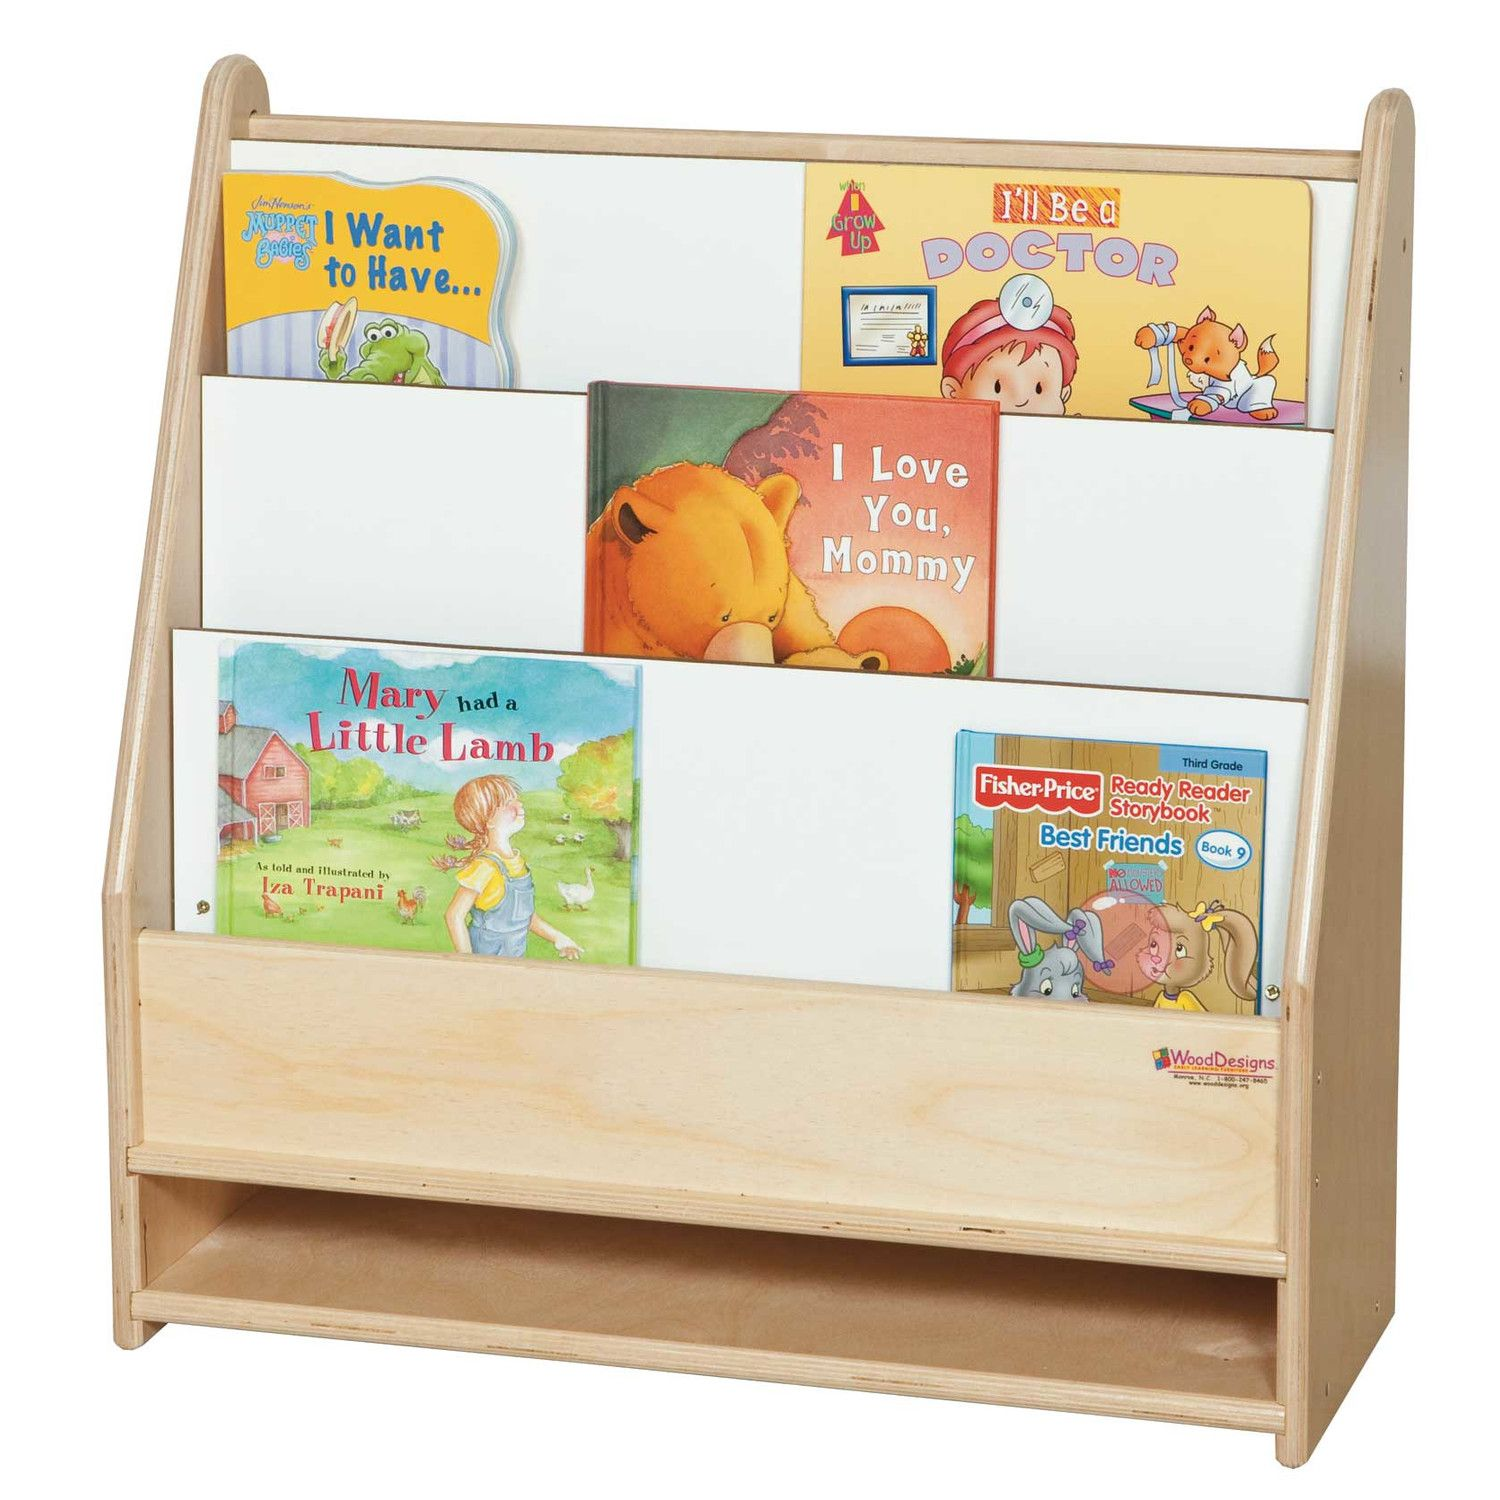 full best bookcase puzzle ideas cabinets pu architecture wall design room size kidkraft famous closet inspiration beautiful also integrated ideal for contemporary of bookshelf shaped bench noticeable toddler nook white and image diy with reading boys bookshelves canada l uncategorized kids toddlers puz